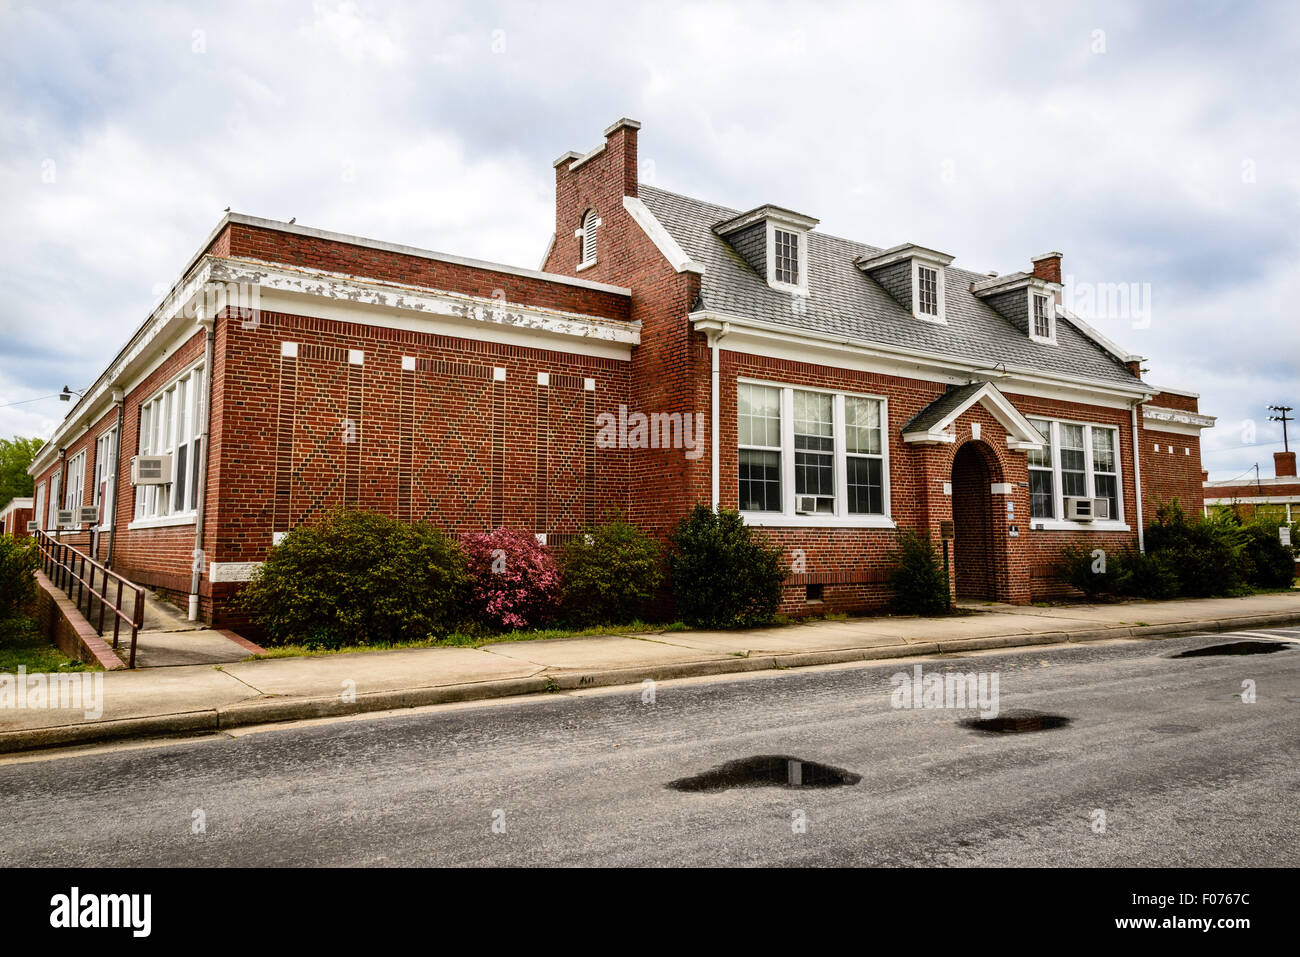 New Kent School, New Kent Highway, New Kent, Virginia - Stock Image